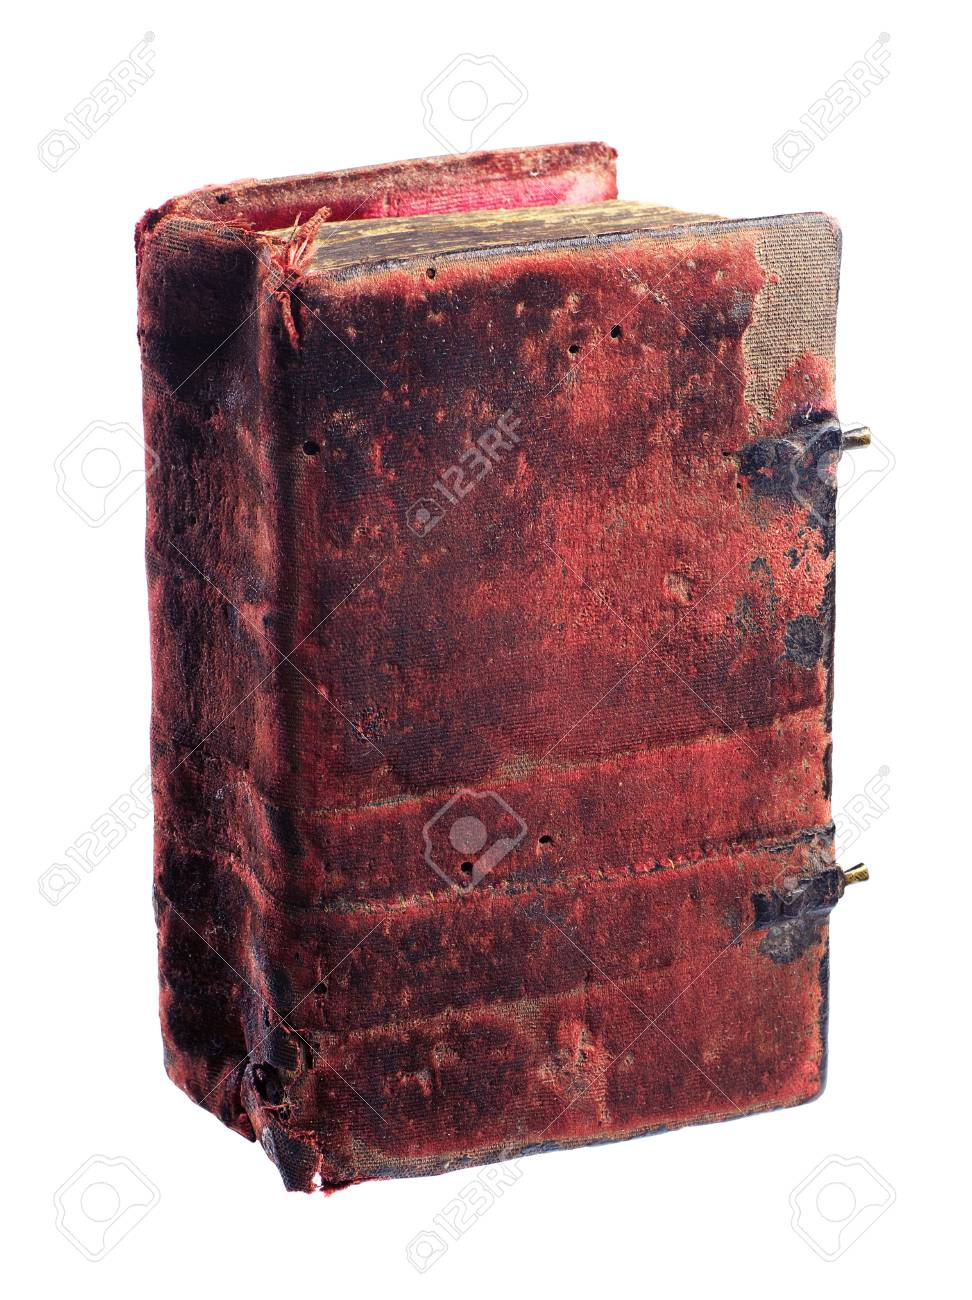 The old book isolated on a white background Stock Photo - 17389654